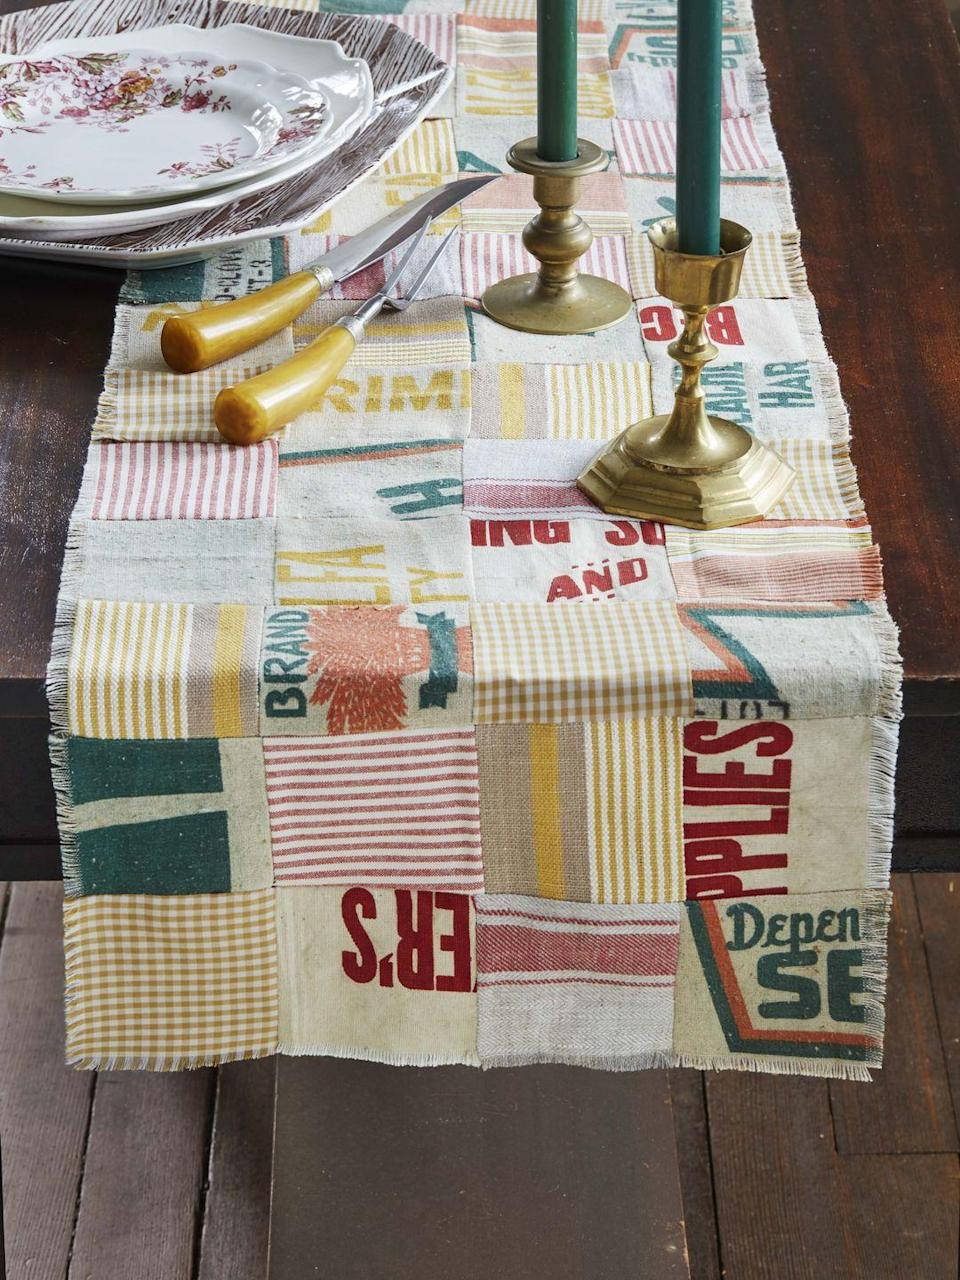 """<p>Vintage grain sacks and scraps of fabric make quite a statement when cut and sewn together in a patchwork pattern.<strong><br></strong></p><p><strong>T</strong><strong>o make: </strong>Cut 4-inch squares from grain sacks and coordinating assorted fabrics, such as gingham, stripes, and knobby linen. Layout in a patchwork pattern mixing the materials; sew together. Fringe the cut edges as desired. <br></p><p><a class=""""link rapid-noclick-resp"""" href=""""https://www.amazon.com/Assorted-Squares-Patchwork-Scrapbooking-Quilting/dp/B075XLMQV5/ref=sr_1_6?linkCode=ogi&tag=syn-yahoo-20&ascsubtag=%5Bartid%7C10050.g.2063%5Bsrc%7Cyahoo-us"""" rel=""""nofollow noopener"""" target=""""_blank"""" data-ylk=""""slk:SHOP FABRIC SCRAPS"""">SHOP FABRIC SCRAPS</a></p>"""